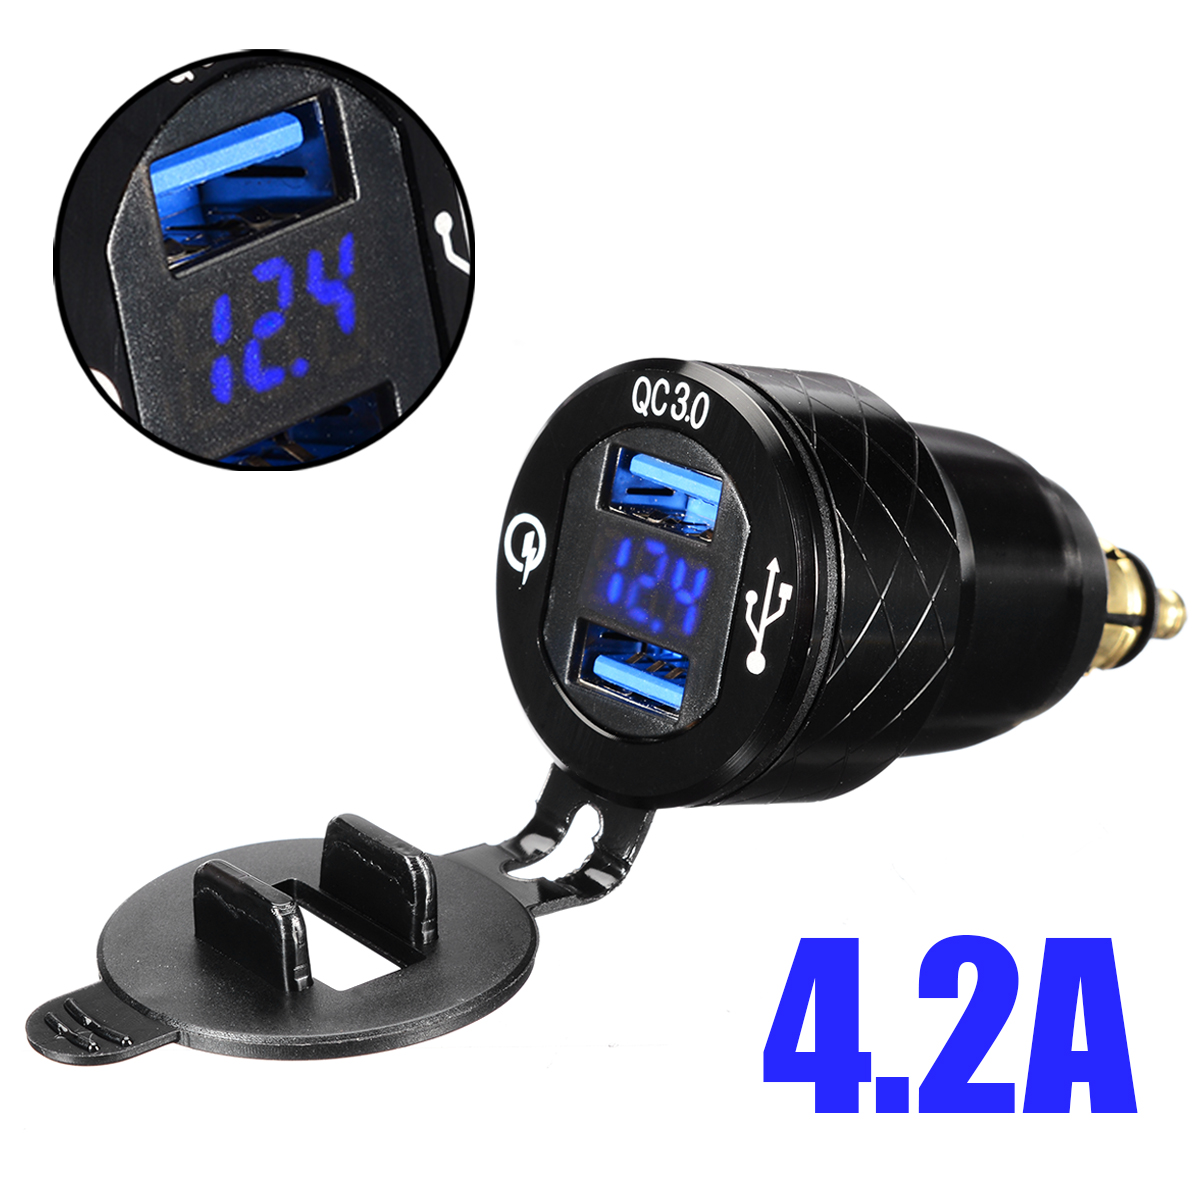 1pc Blue LED 5V 4.2A Motorcycle DIN Socket Dual <font><b>USB</b></font> <font><b>Charger</b></font> Adapter For <font><b>BMW</b></font> F800 F650 F700 R1200 GS EU Plug image